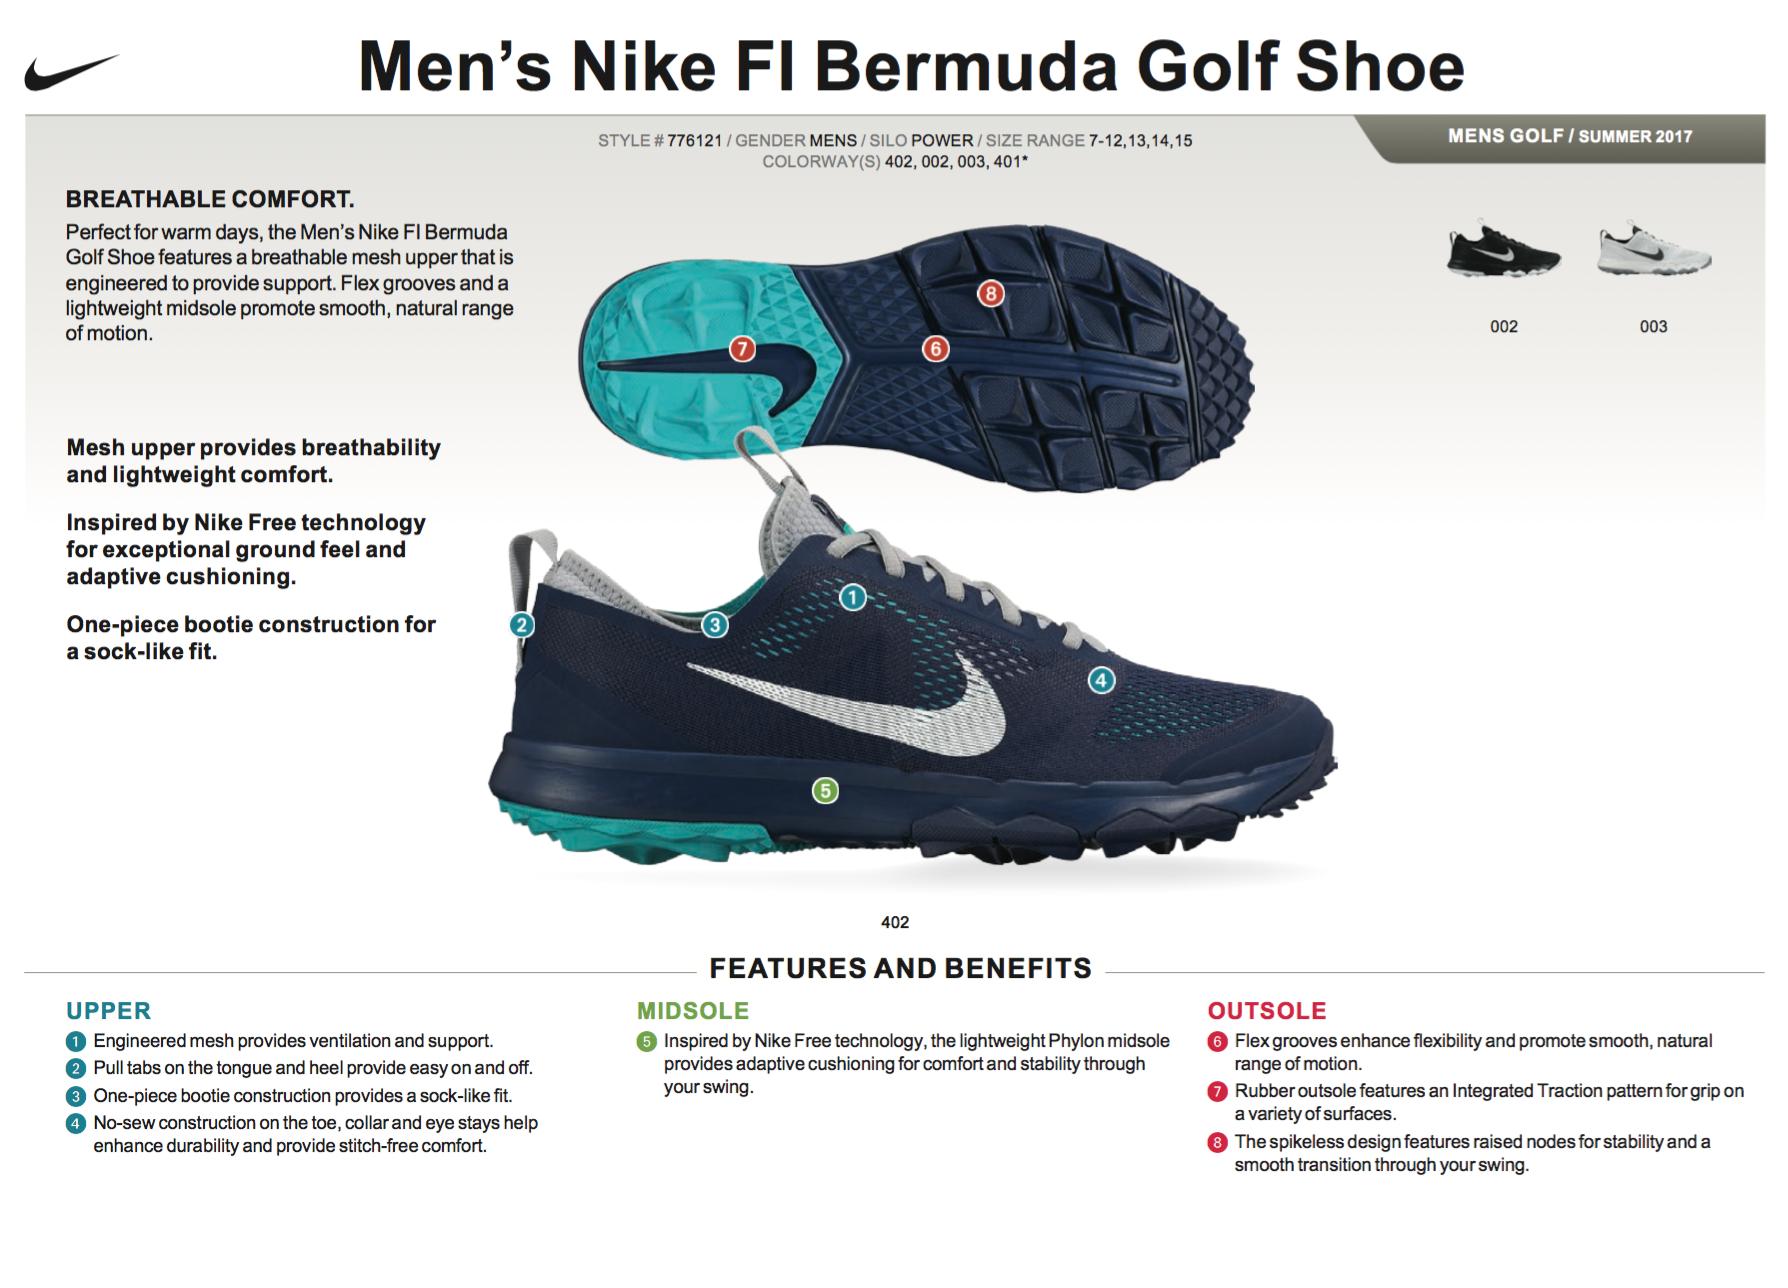 b772cfb456688 ... FI Bermuda Men's Golf Shoe is designed for stability and a locked-in  feel with integrated outsole traction and an interior bootie that hugs the  foot.